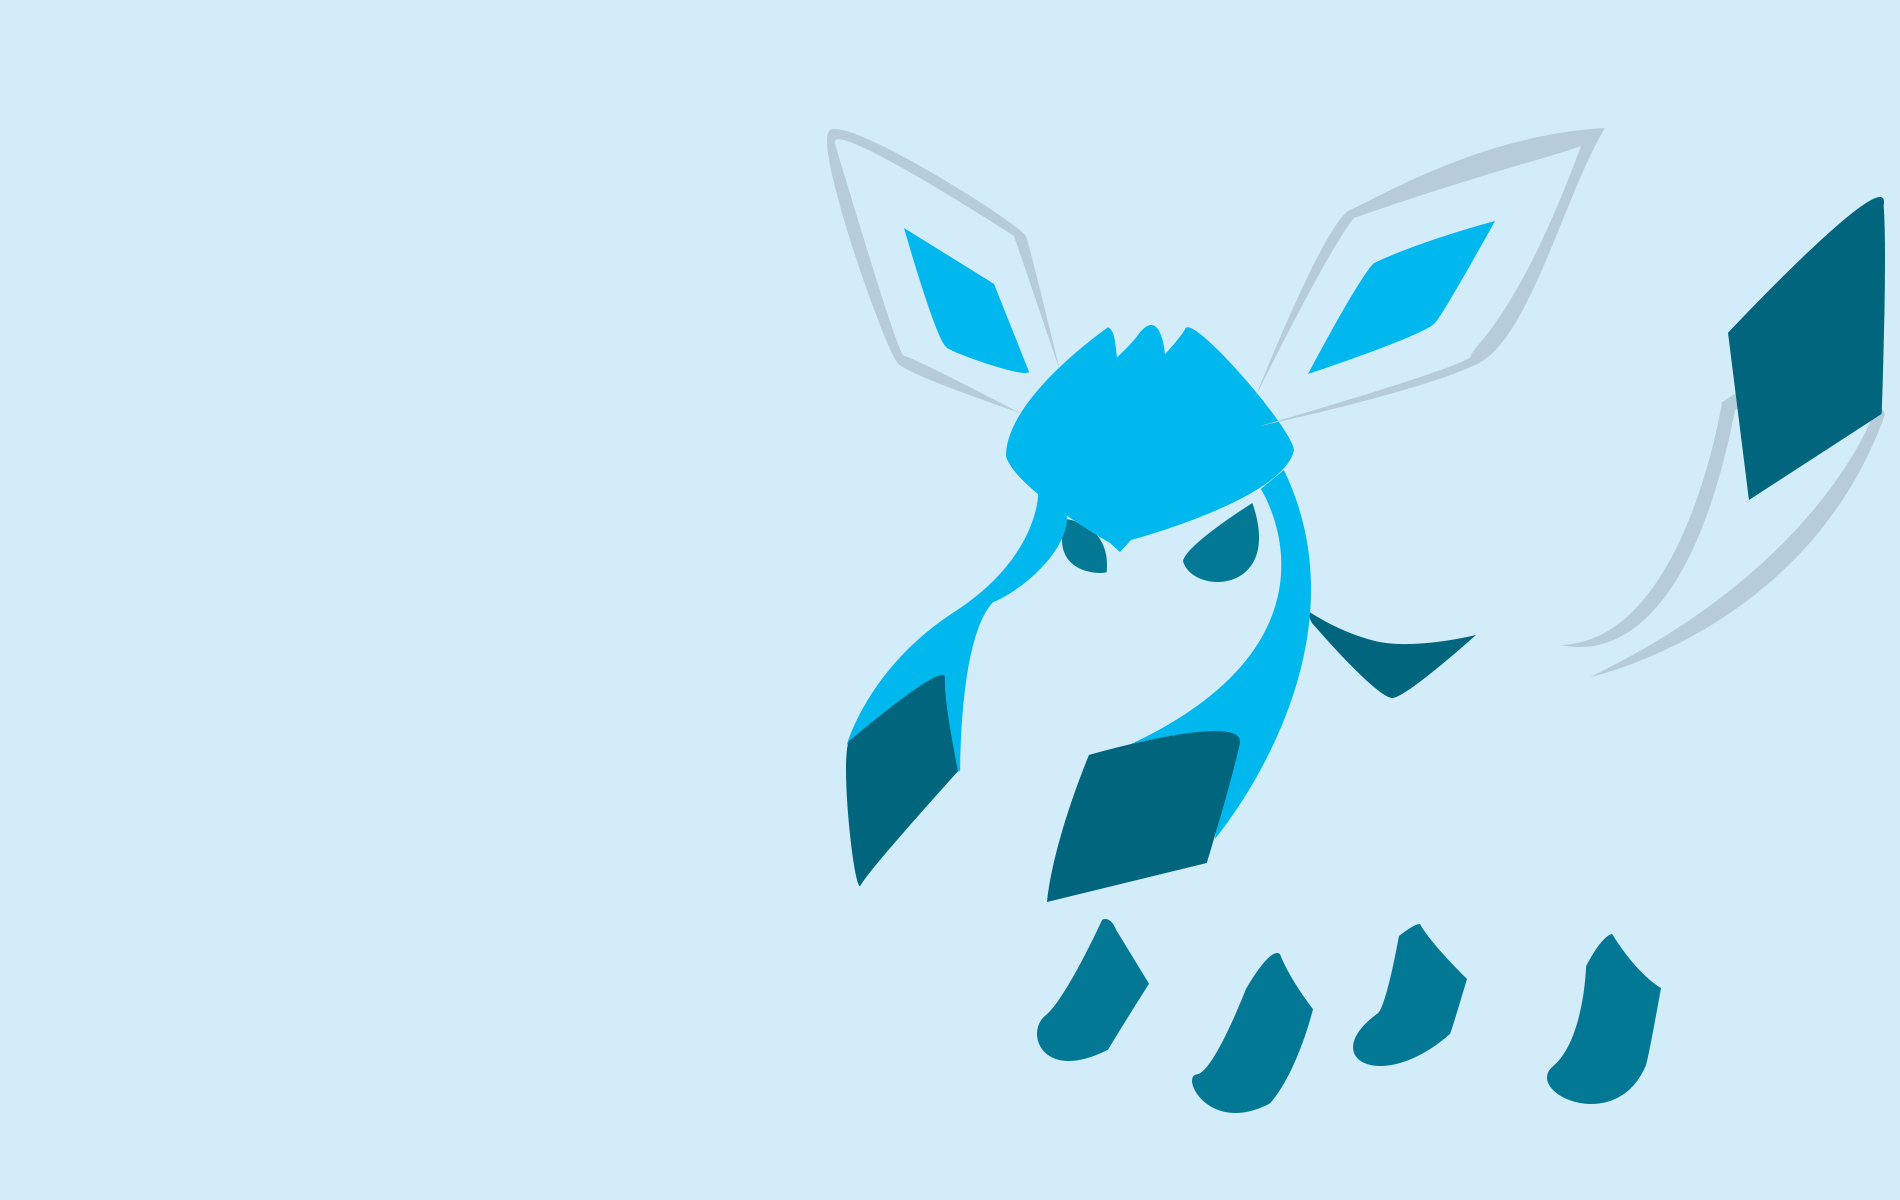 Glaceon Wallpapers Top Free Glaceon Backgrounds Wallpaperaccess